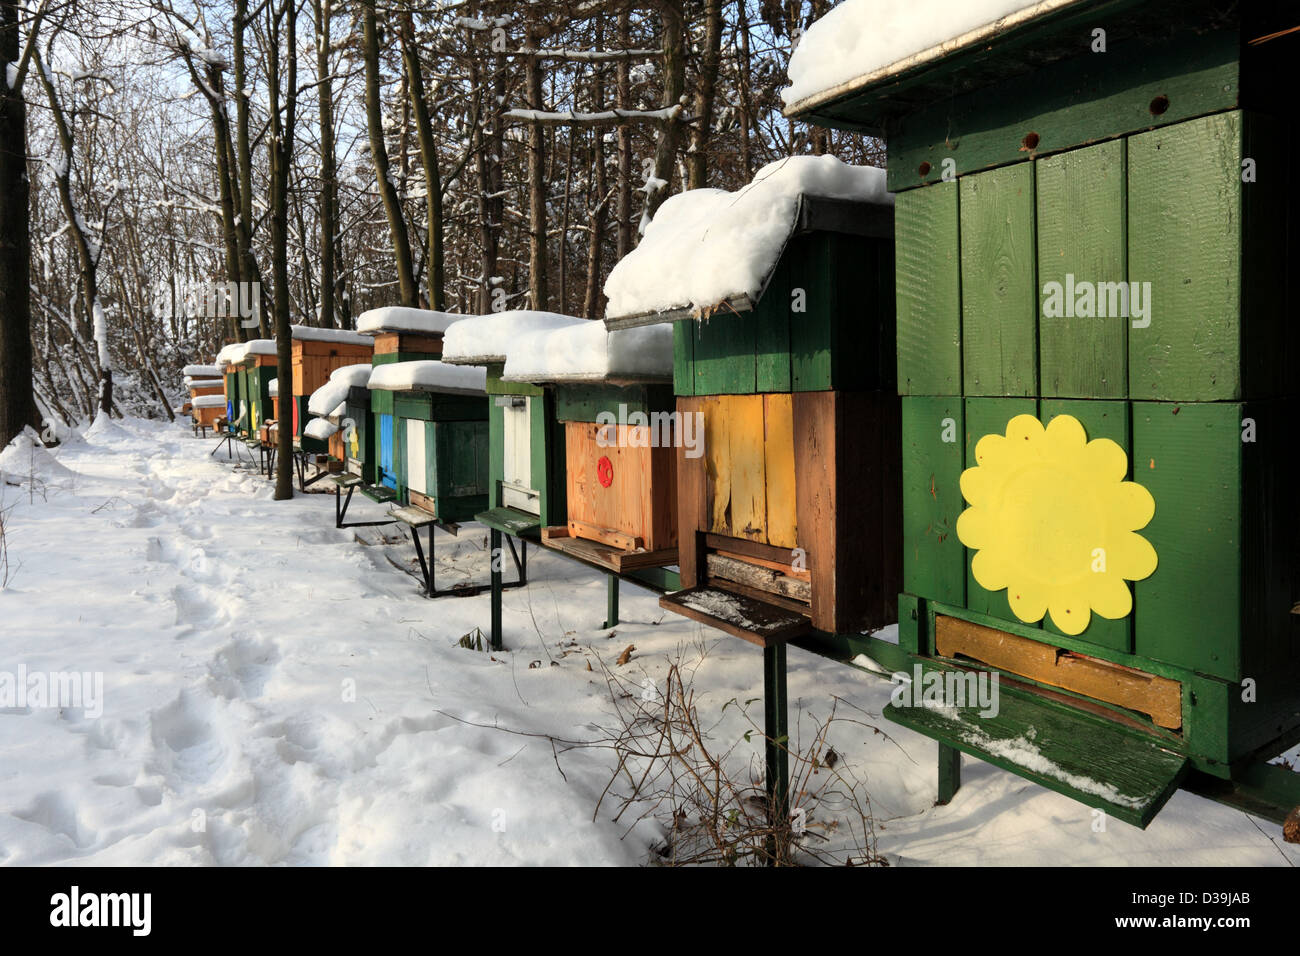 Apiary with wooden beehives on a sunny winter day, Male Karpaty, Slovakia. - Stock Image